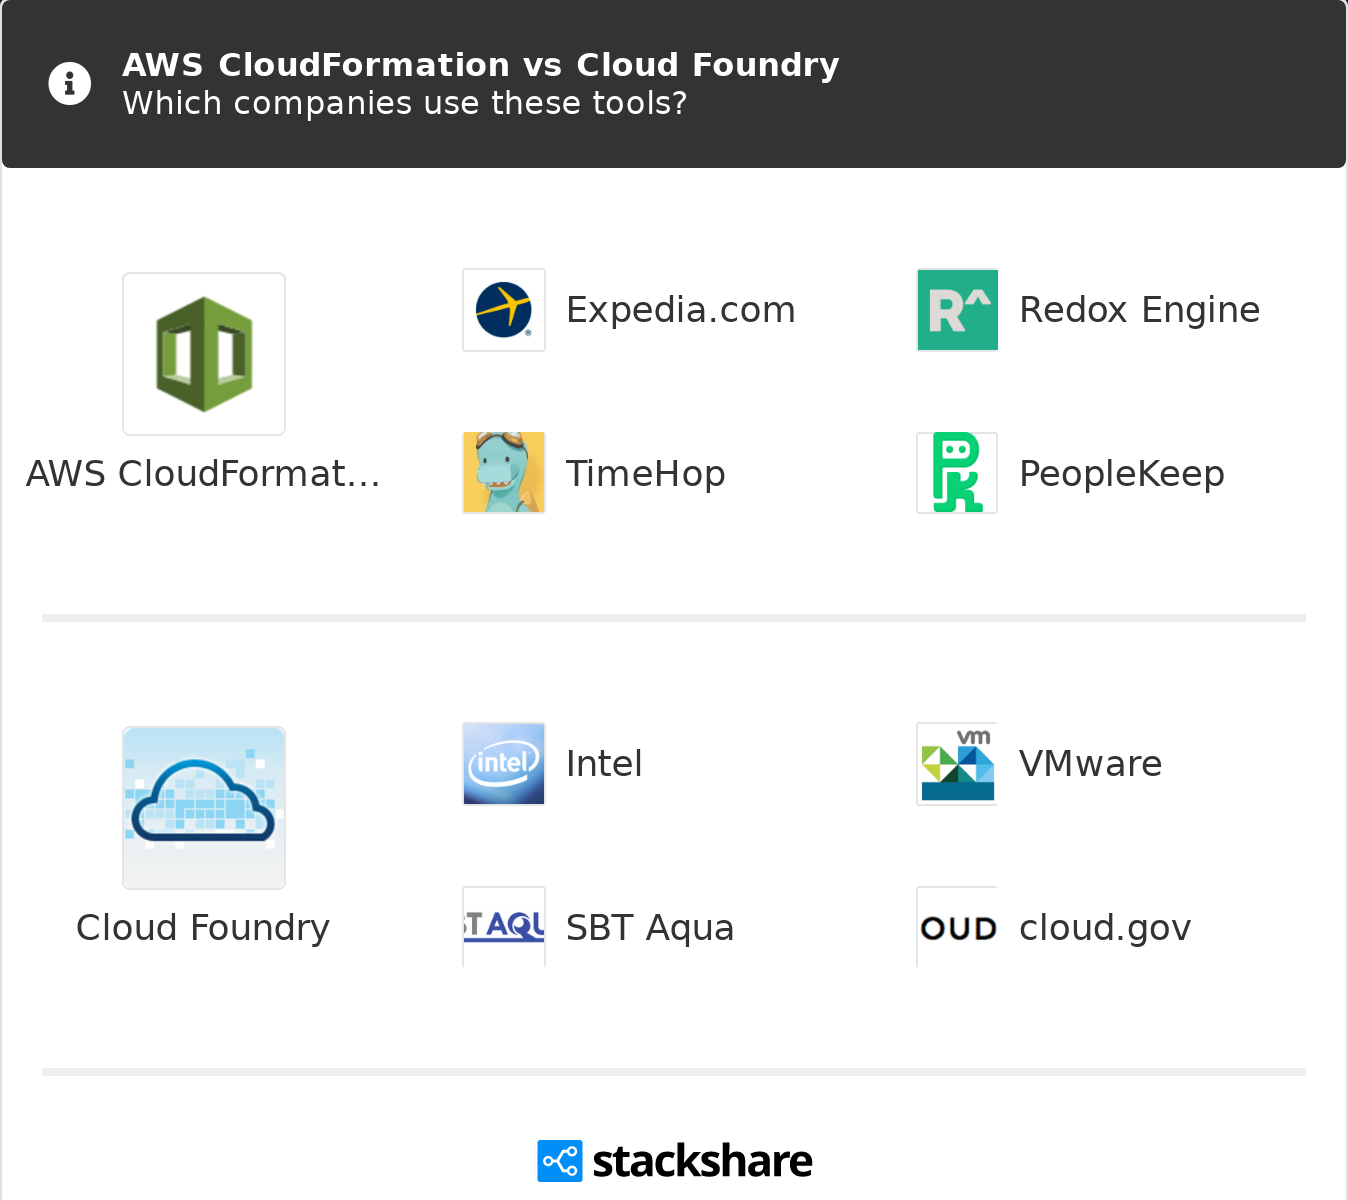 AWS CloudFormation vs Cloud Foundry | What are the differences?